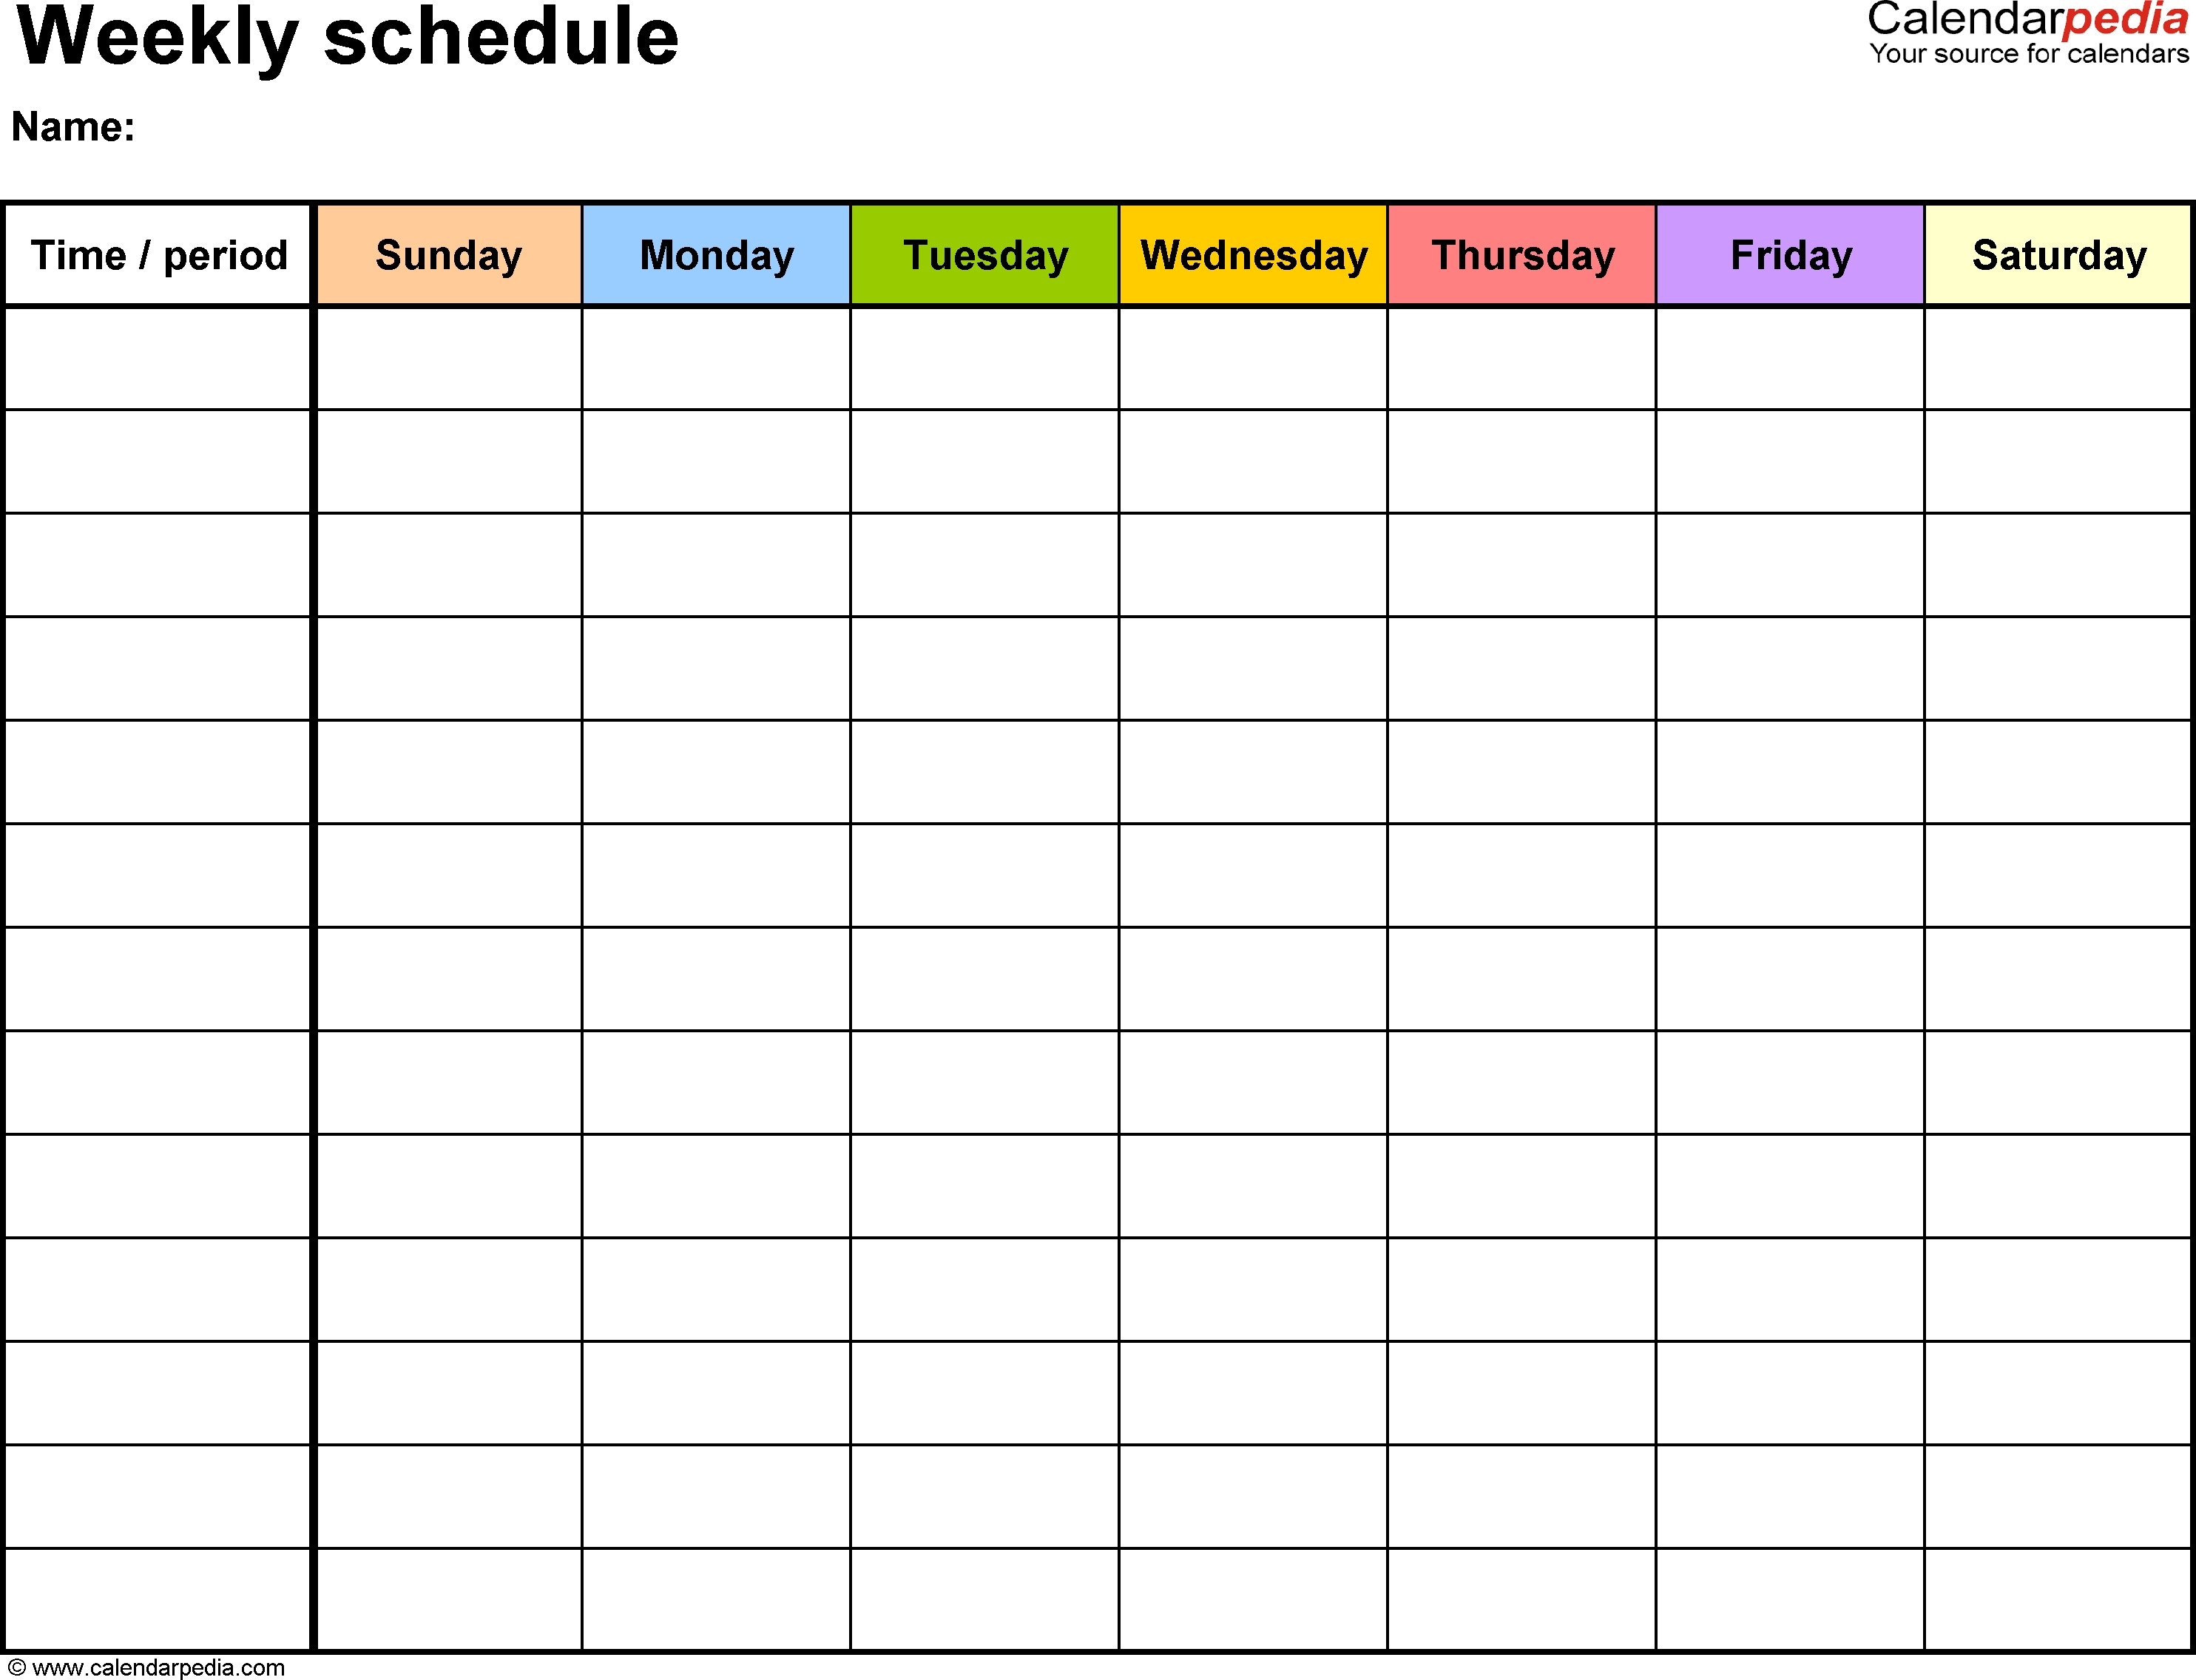 Free Weekly Schedule Templates For Excel - 18 Templates | ~Yoga within Free Printable Weekly Schedule Template